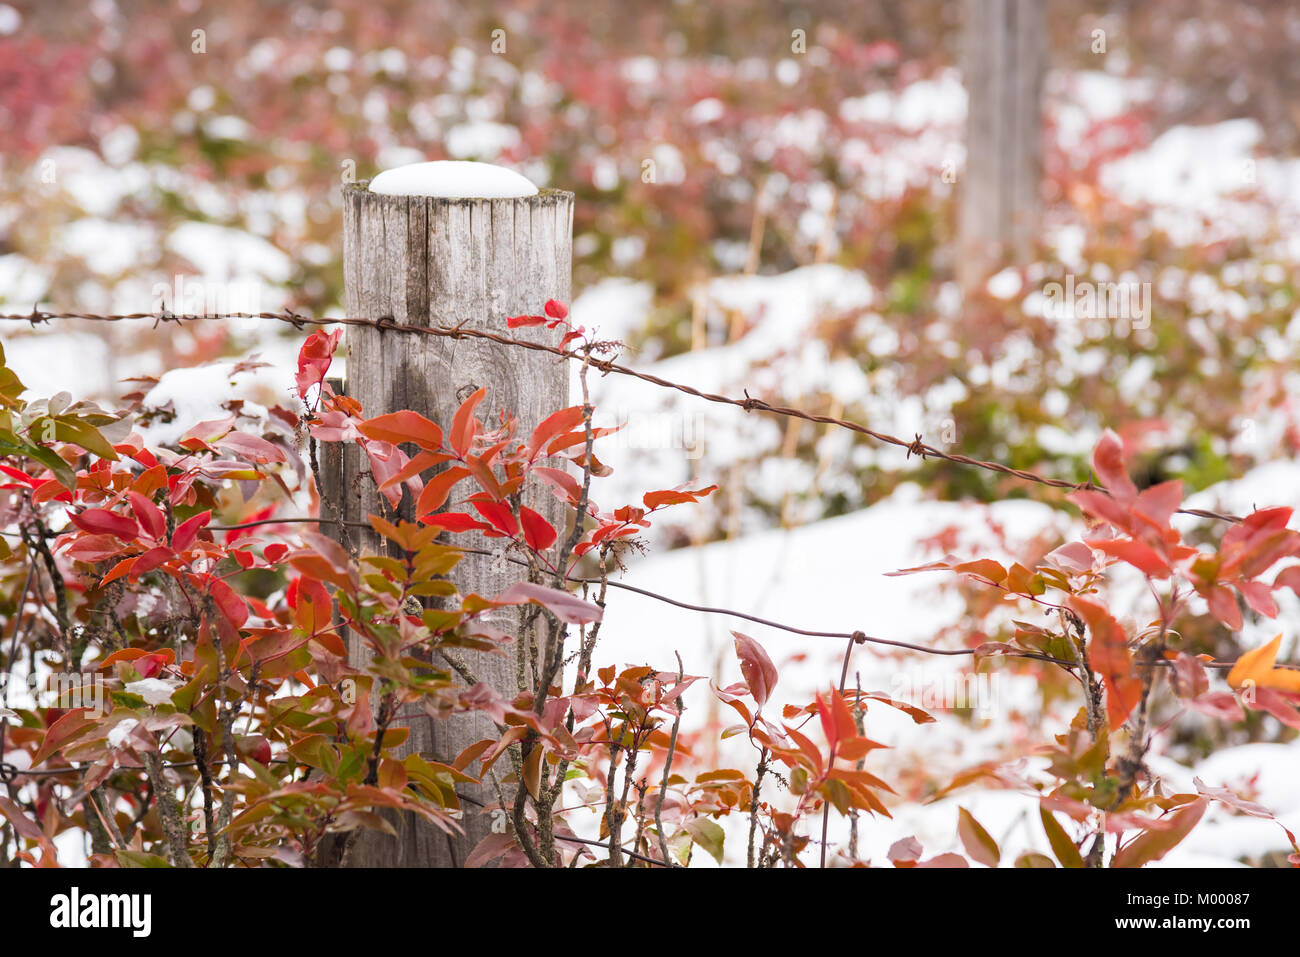 Snow-covered wooden fence post surrounded by red leaves of Oregon Grape Holly - Stock Image